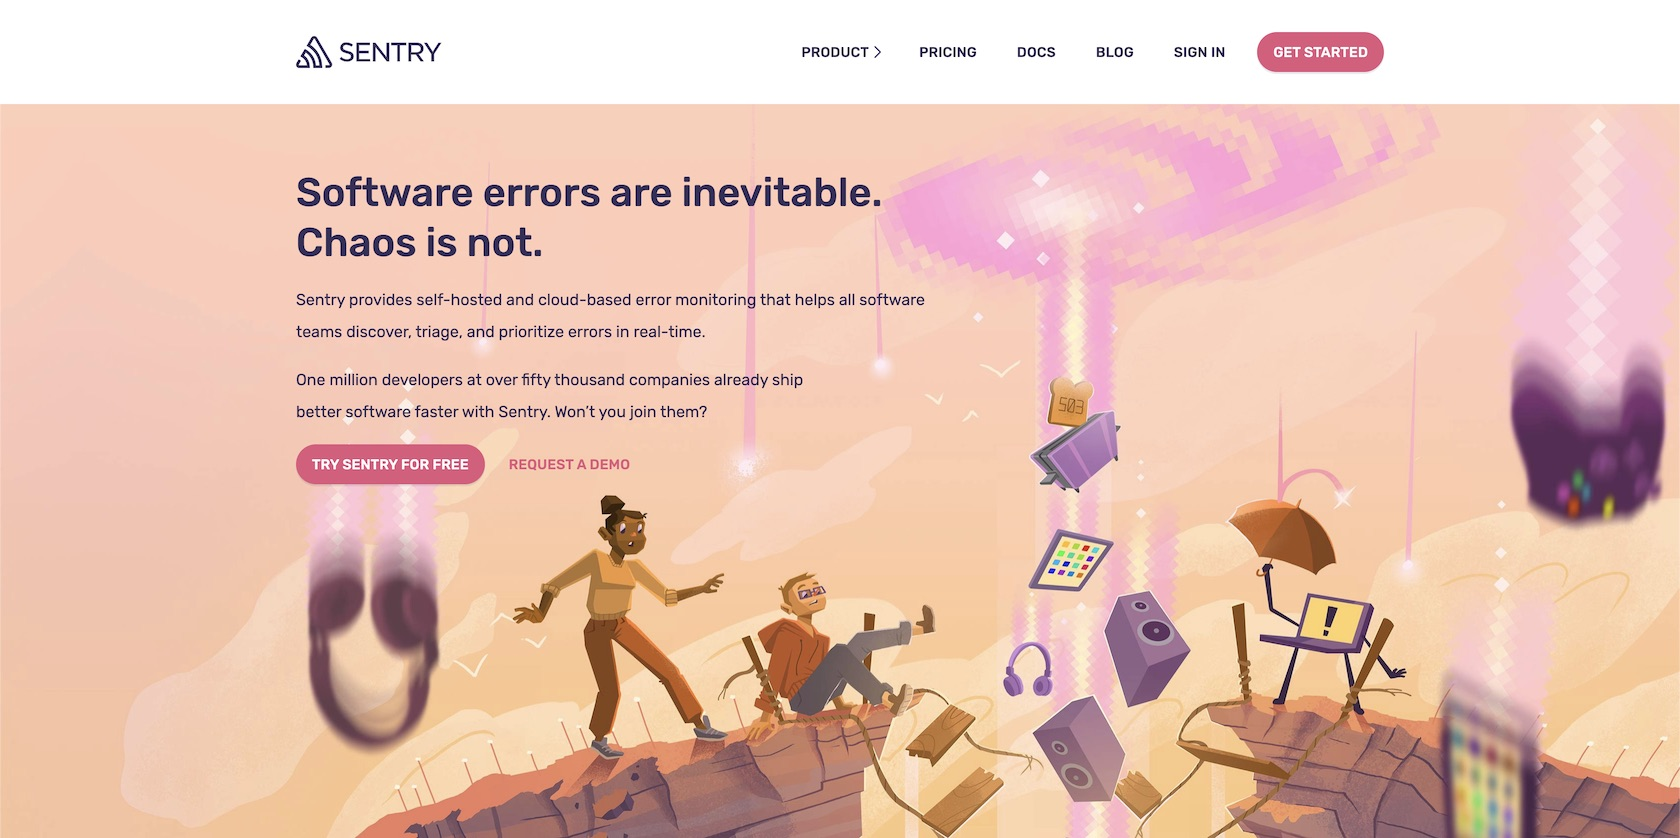 Sentry.io homepage where you can sign up for a free account.